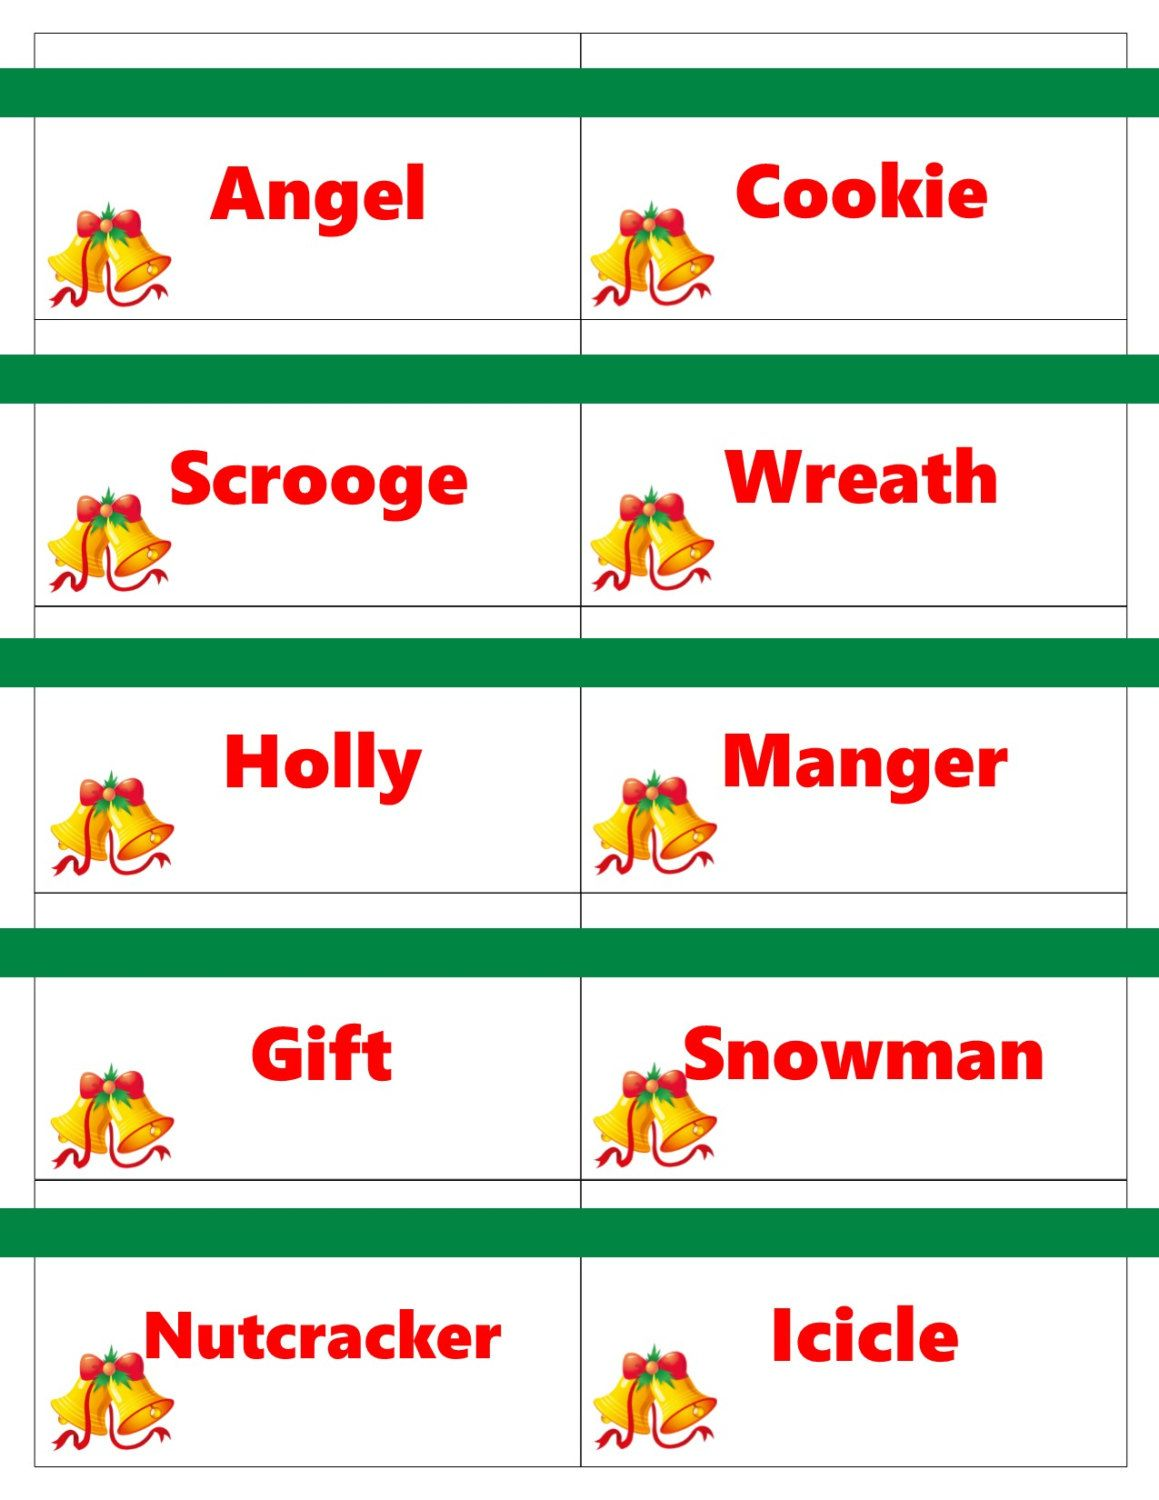 Printable Christmas Game Cards For Pictionary Or Charades Hangman Or 20 Questions Instant